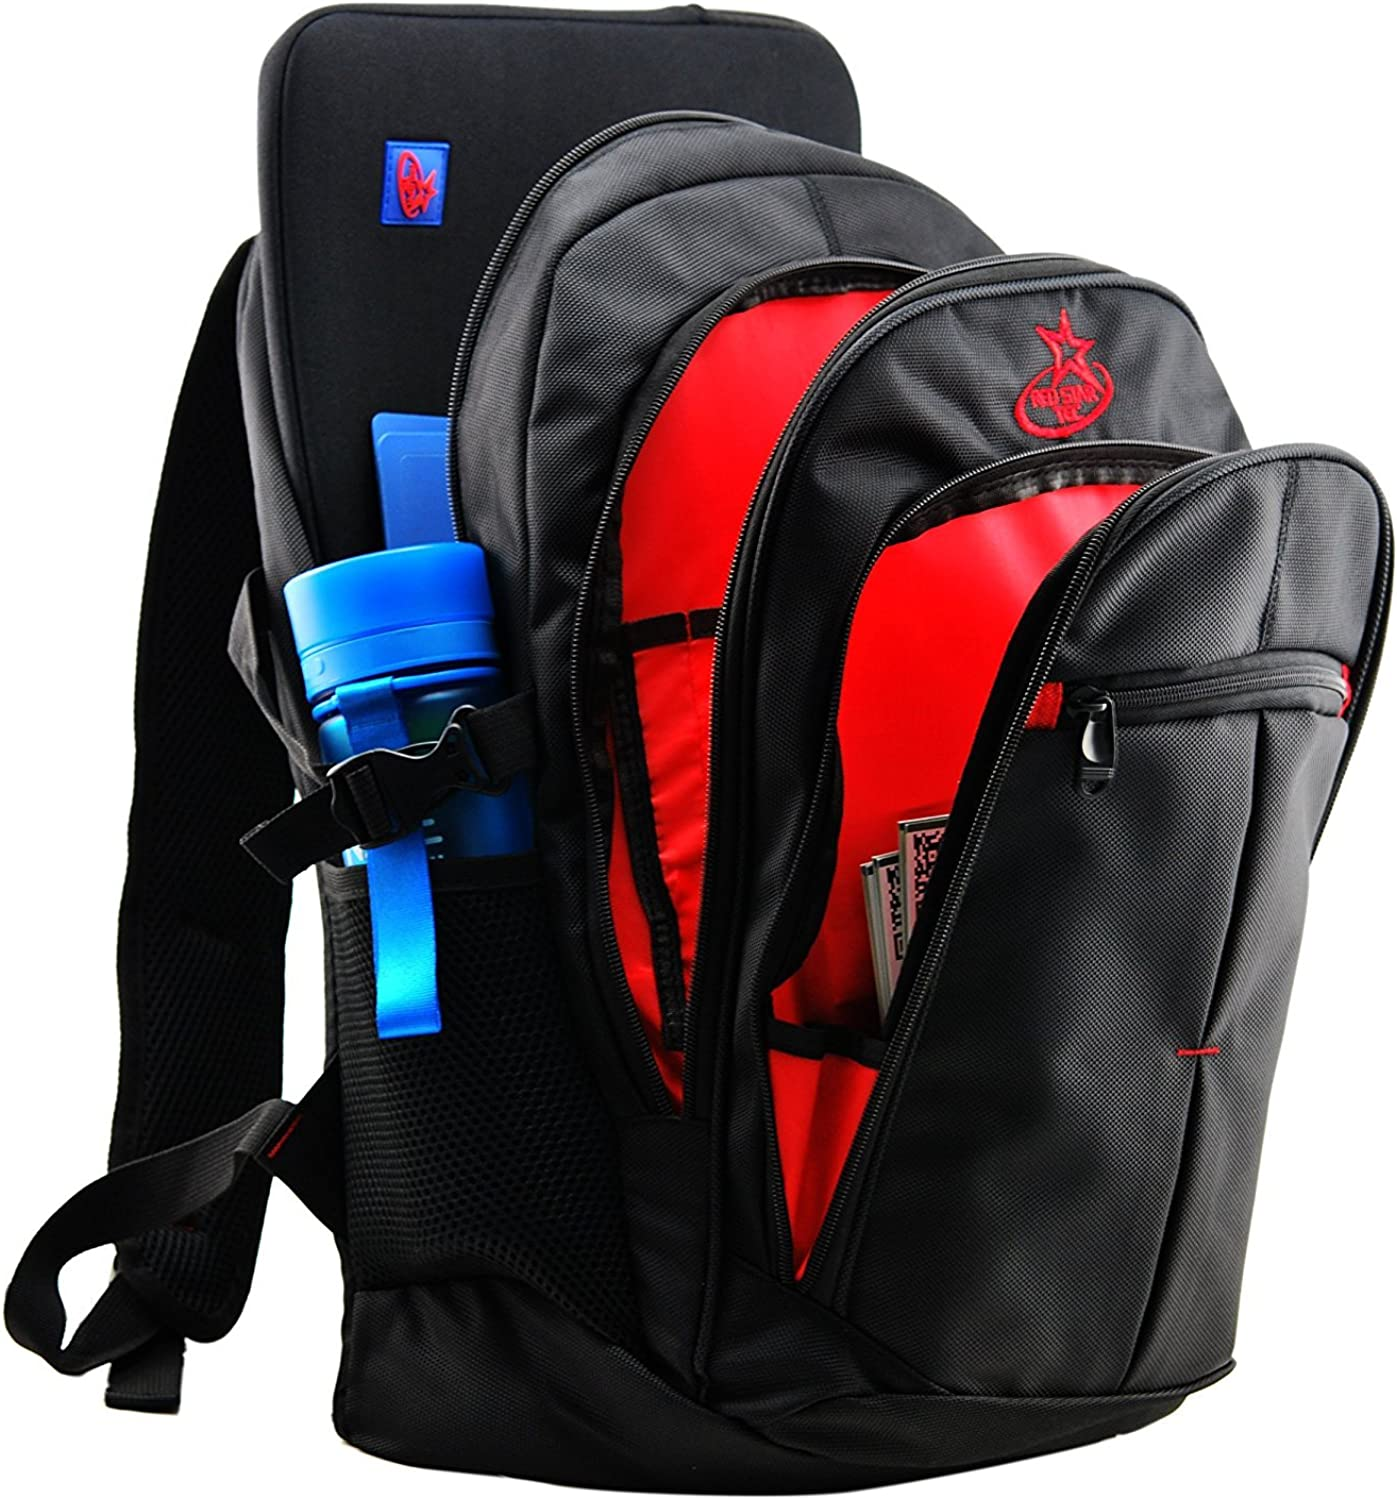 Red Star Tec 17 Inch Laptop Backpack Computer Bag - With 15.6 in Laptop Sleeve